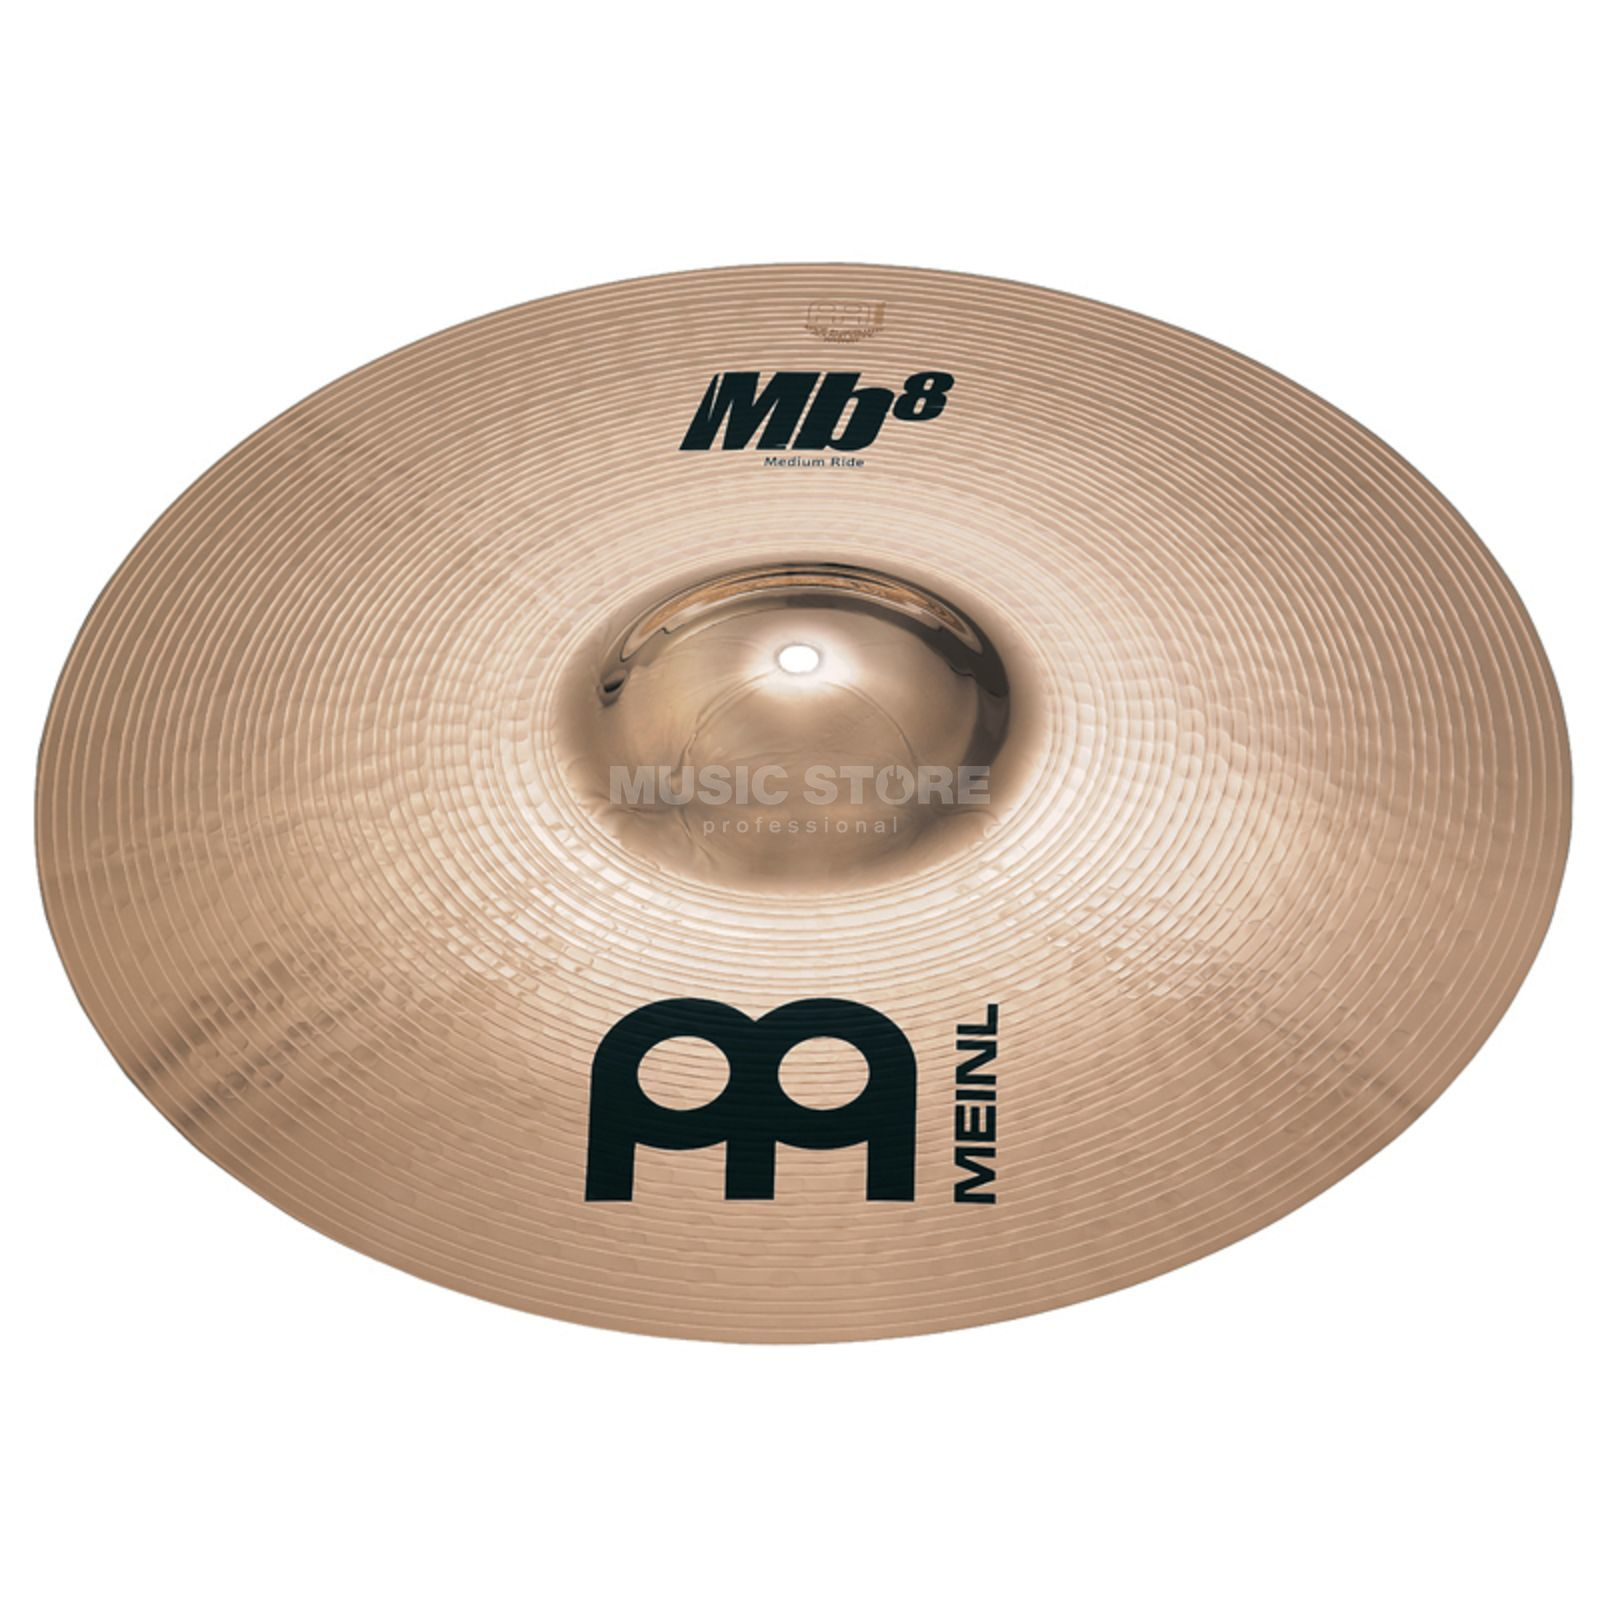 "Meinl MB8 Medium Ride 22"" MB8-22MR-B Produktbild"